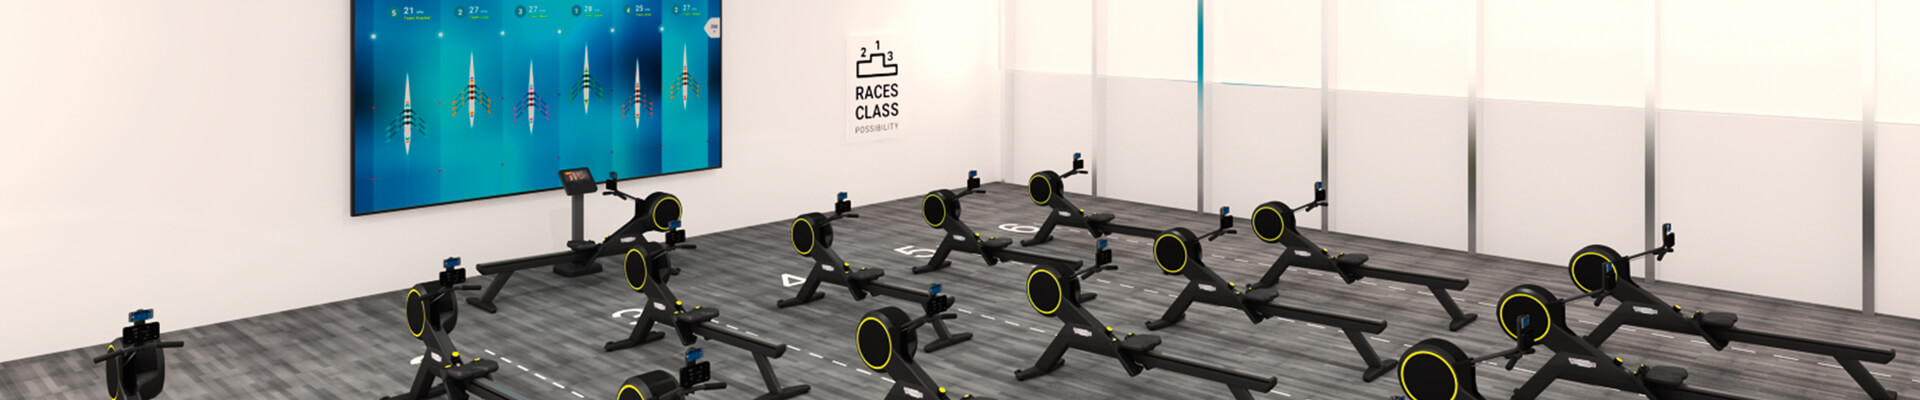 technogym partners with rowingwod to showcase skillrow. Black Bedroom Furniture Sets. Home Design Ideas